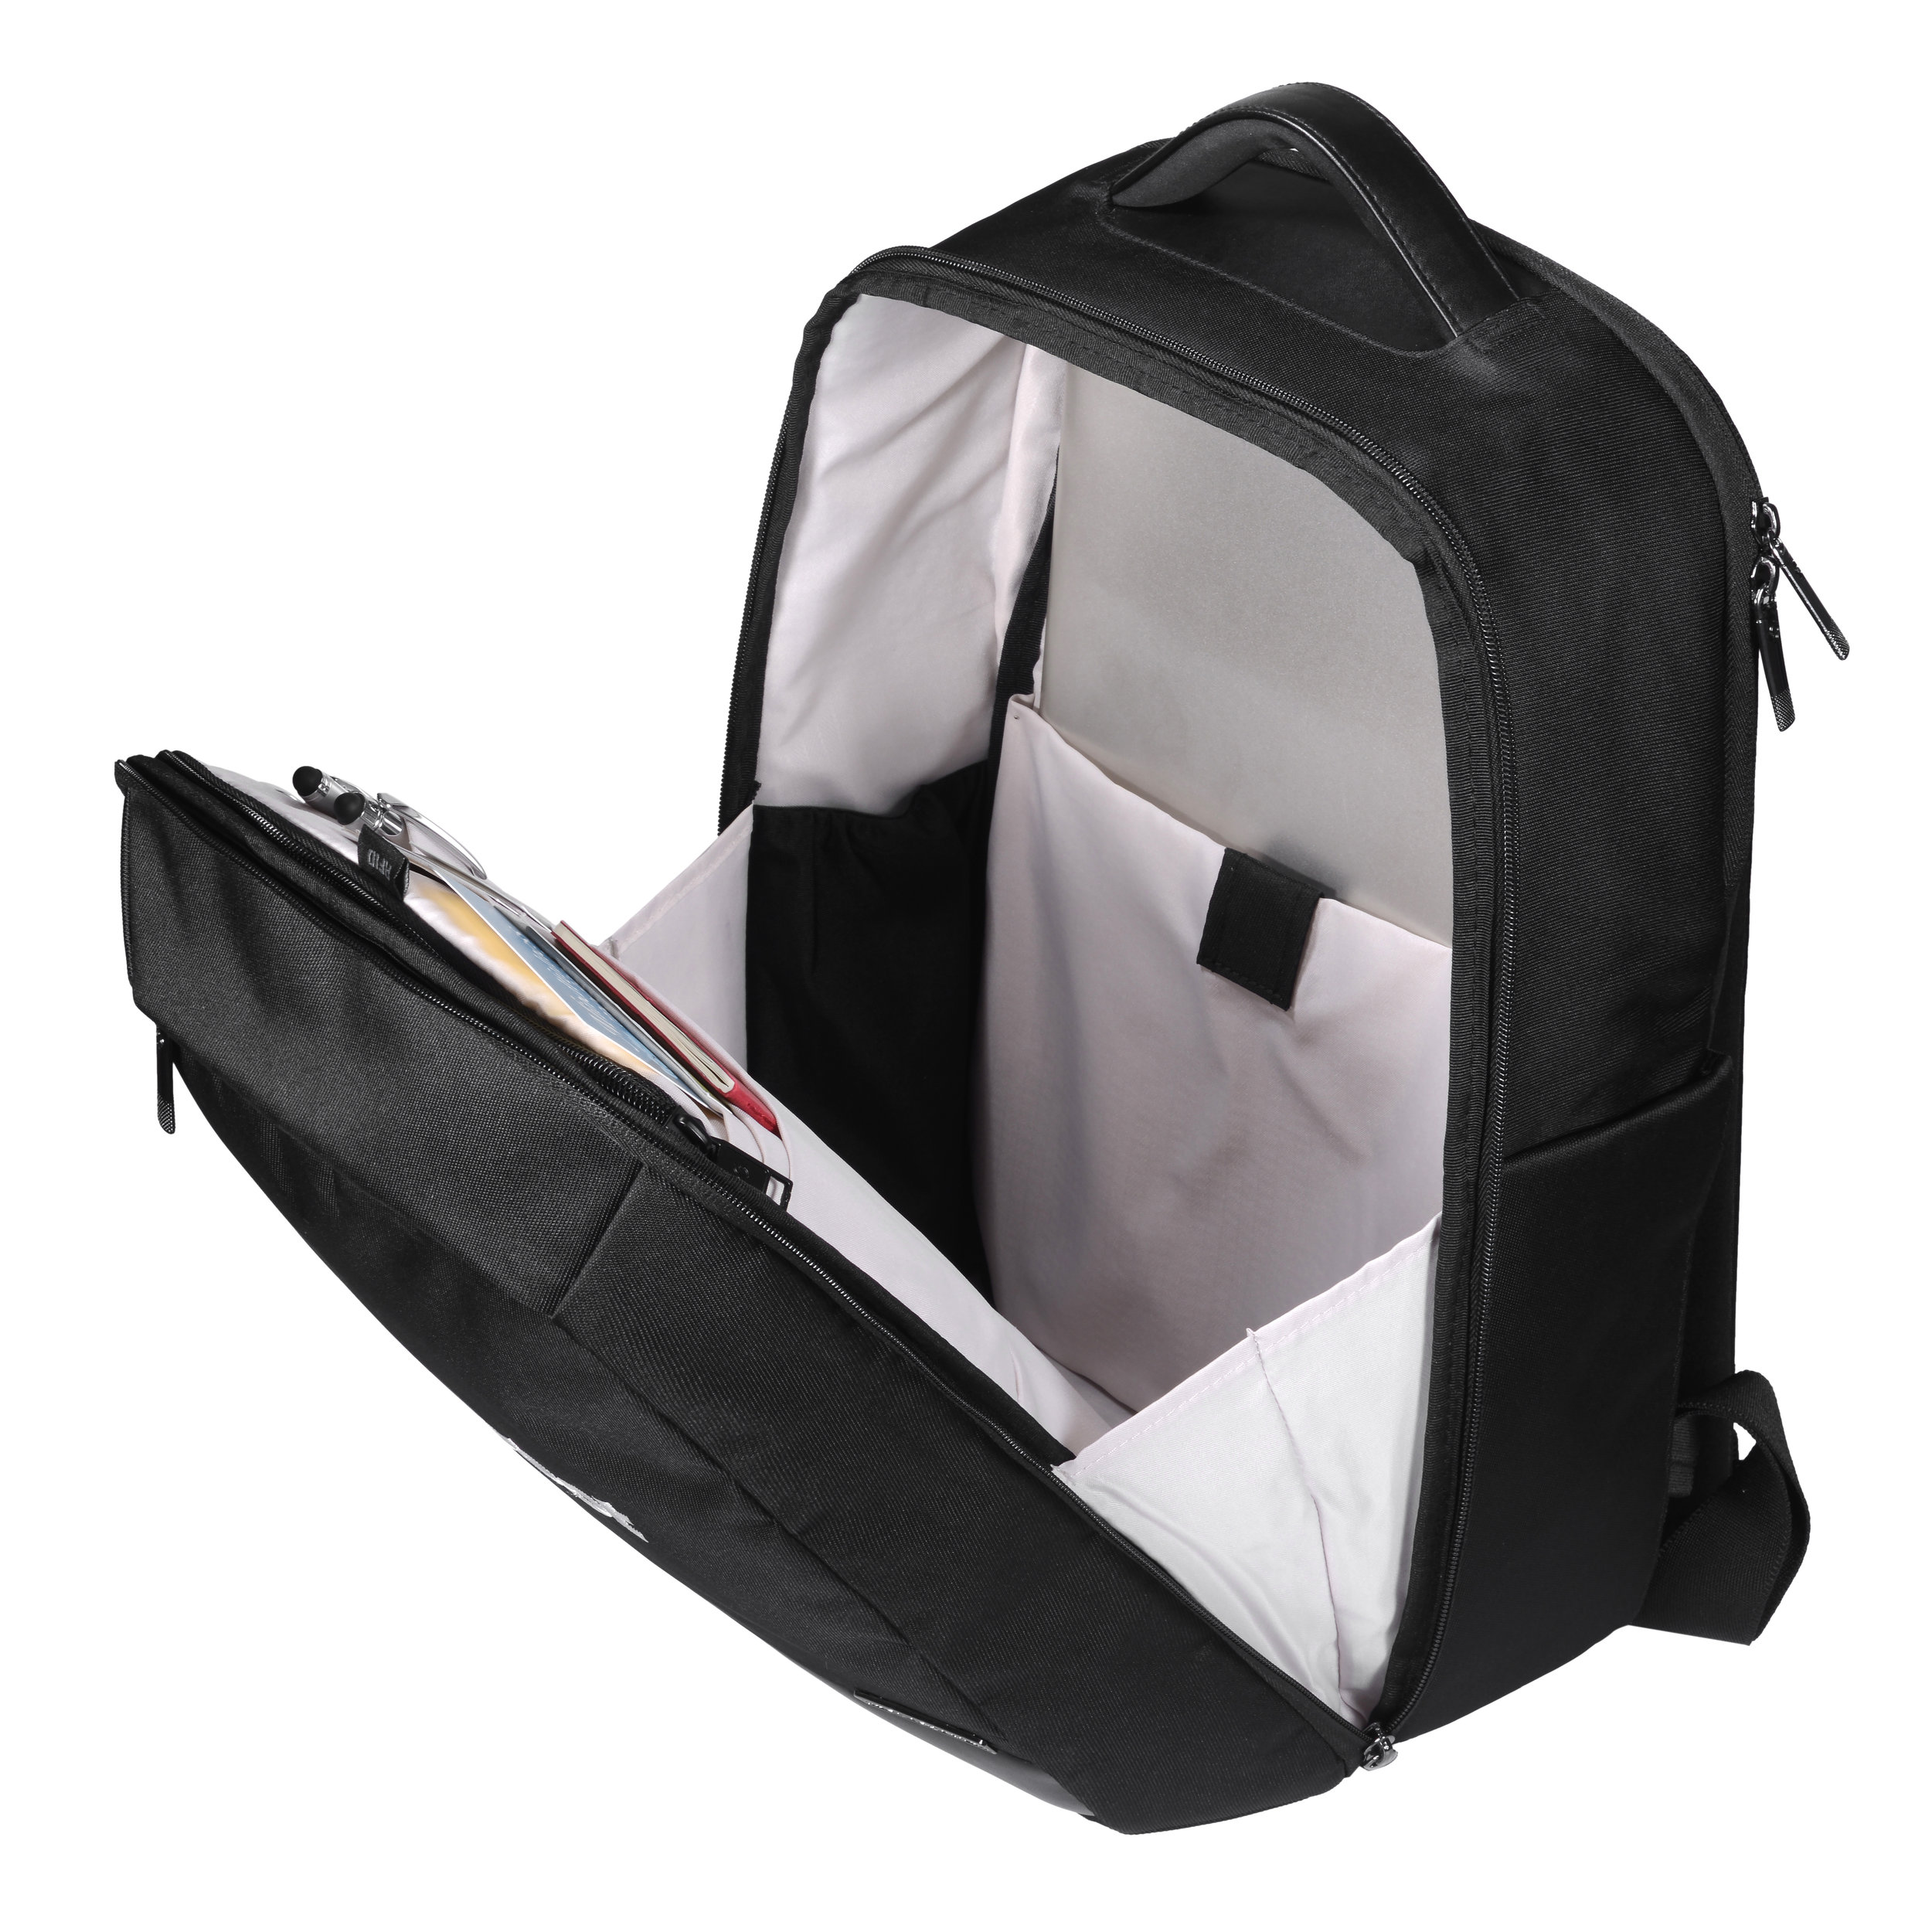 Large interior gusset to allow for easy access to organization.